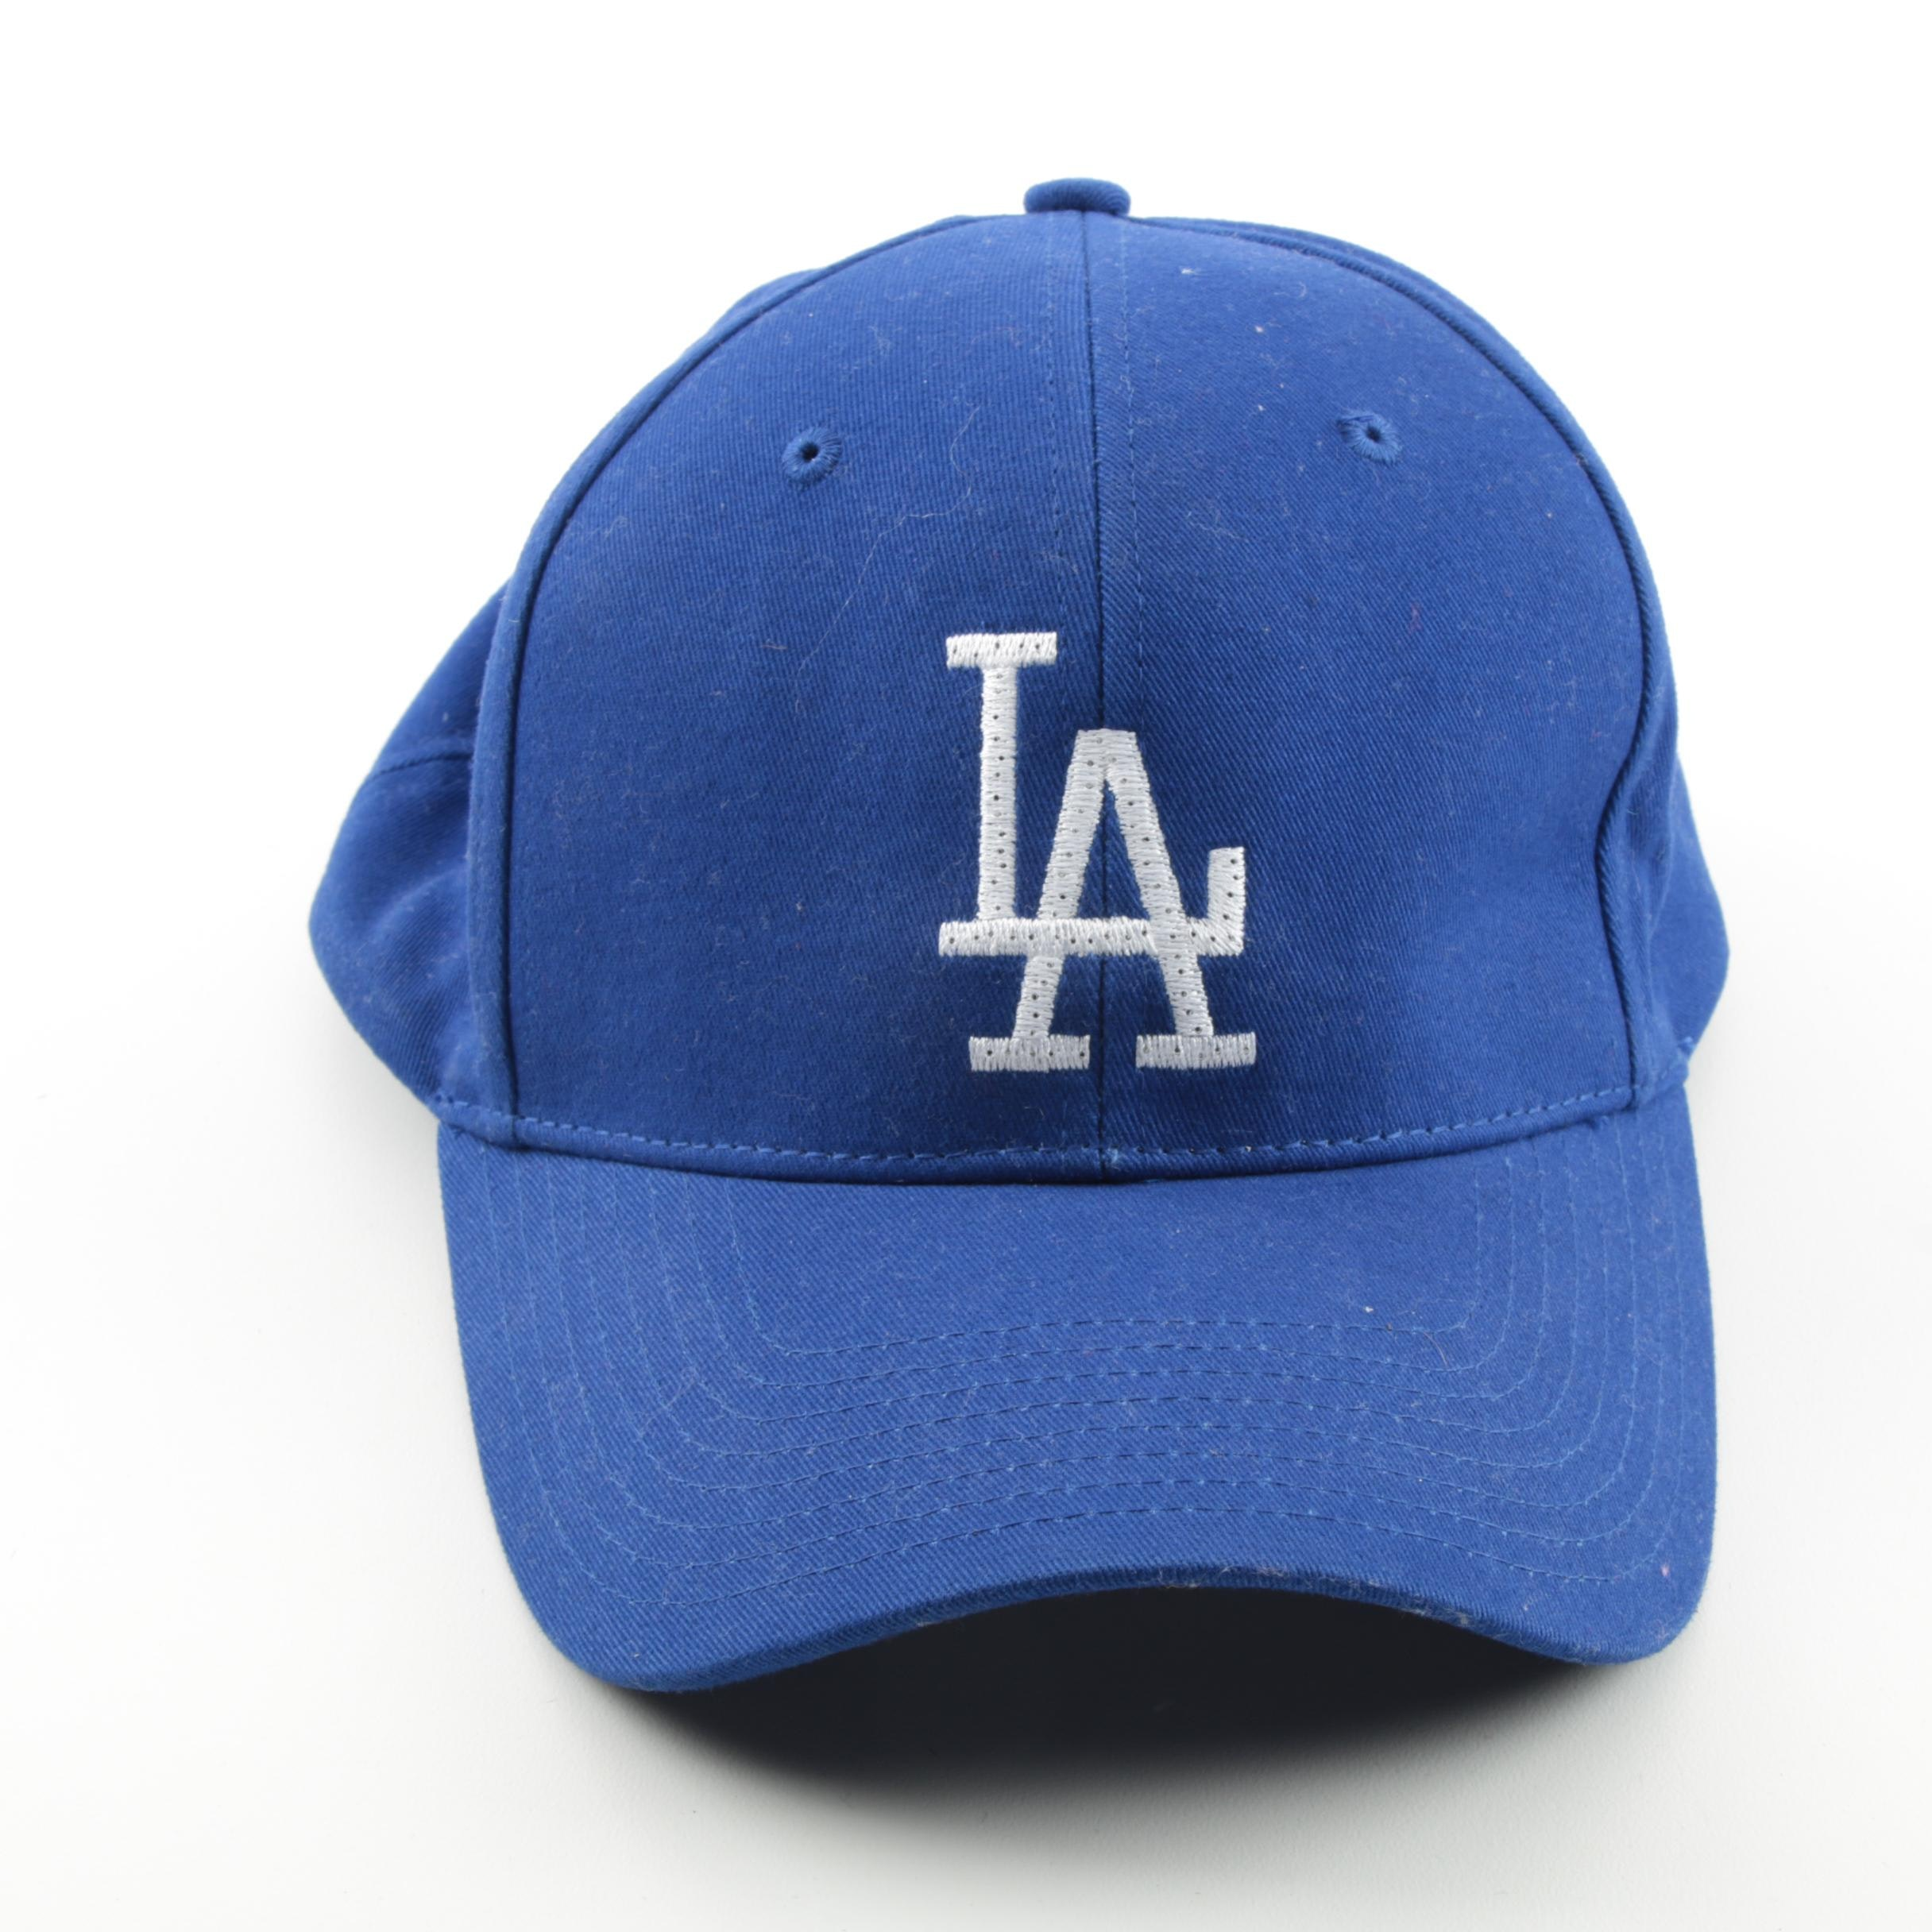 L.A. Dodgers Lightwear Light Up Baseball Cap